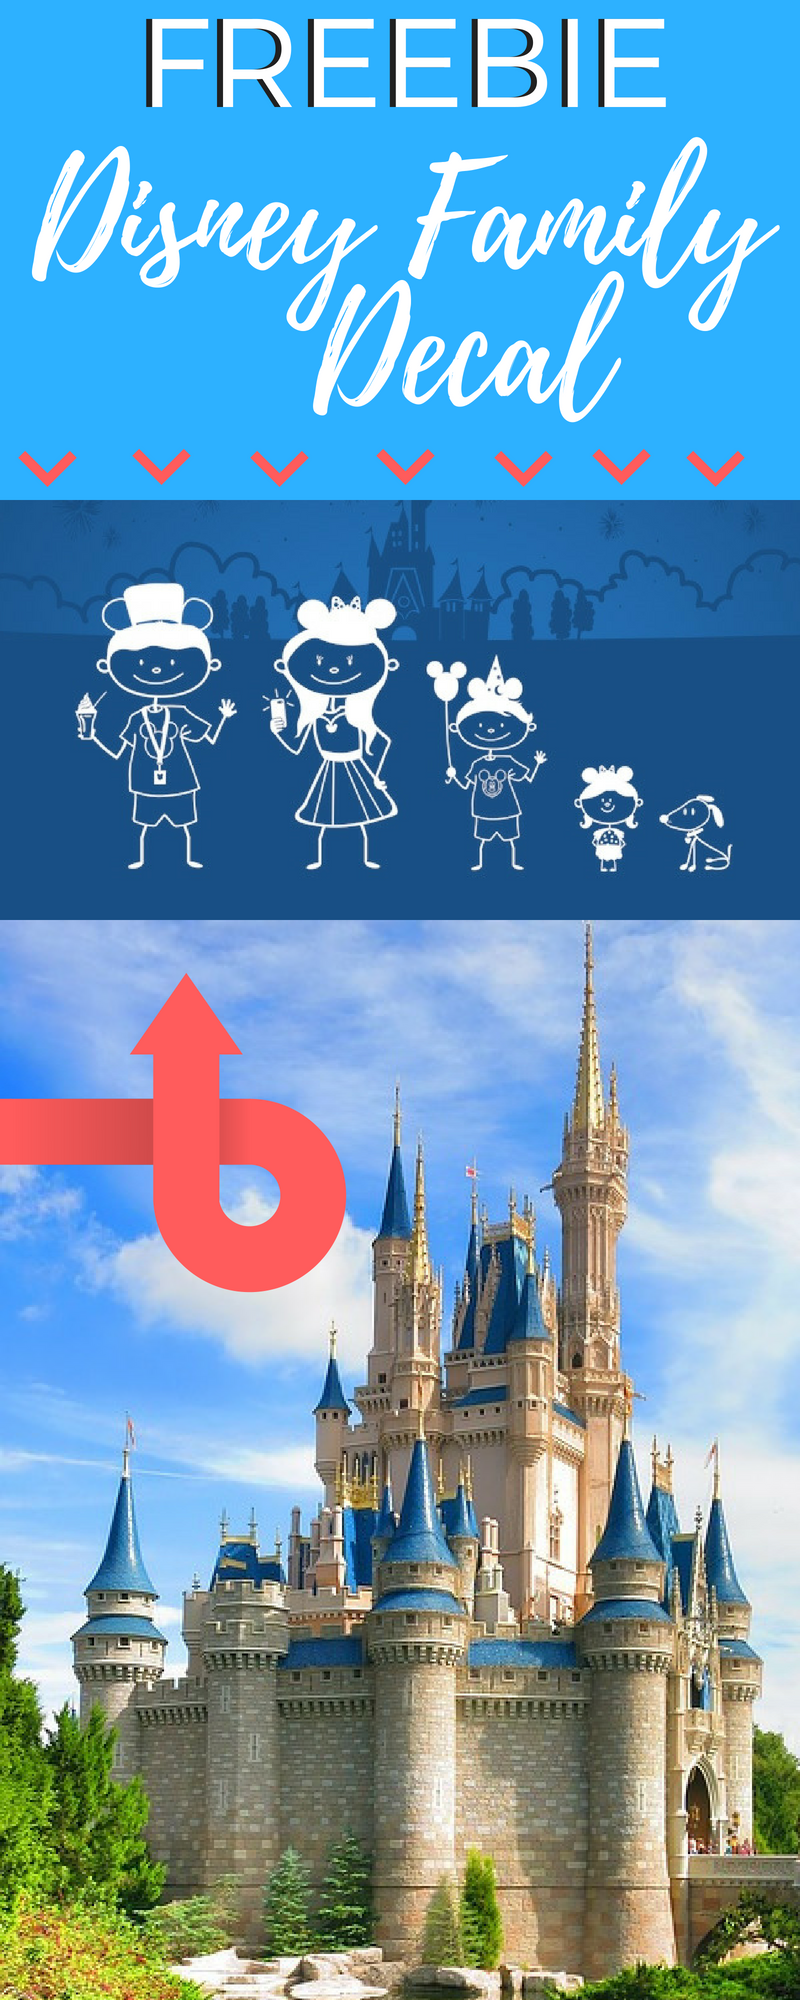 Get your free Disney family decal before they're all gone! #Disney #Freebie #DisneyWorld #Free #Vacation #Family #SummerFun #Kids